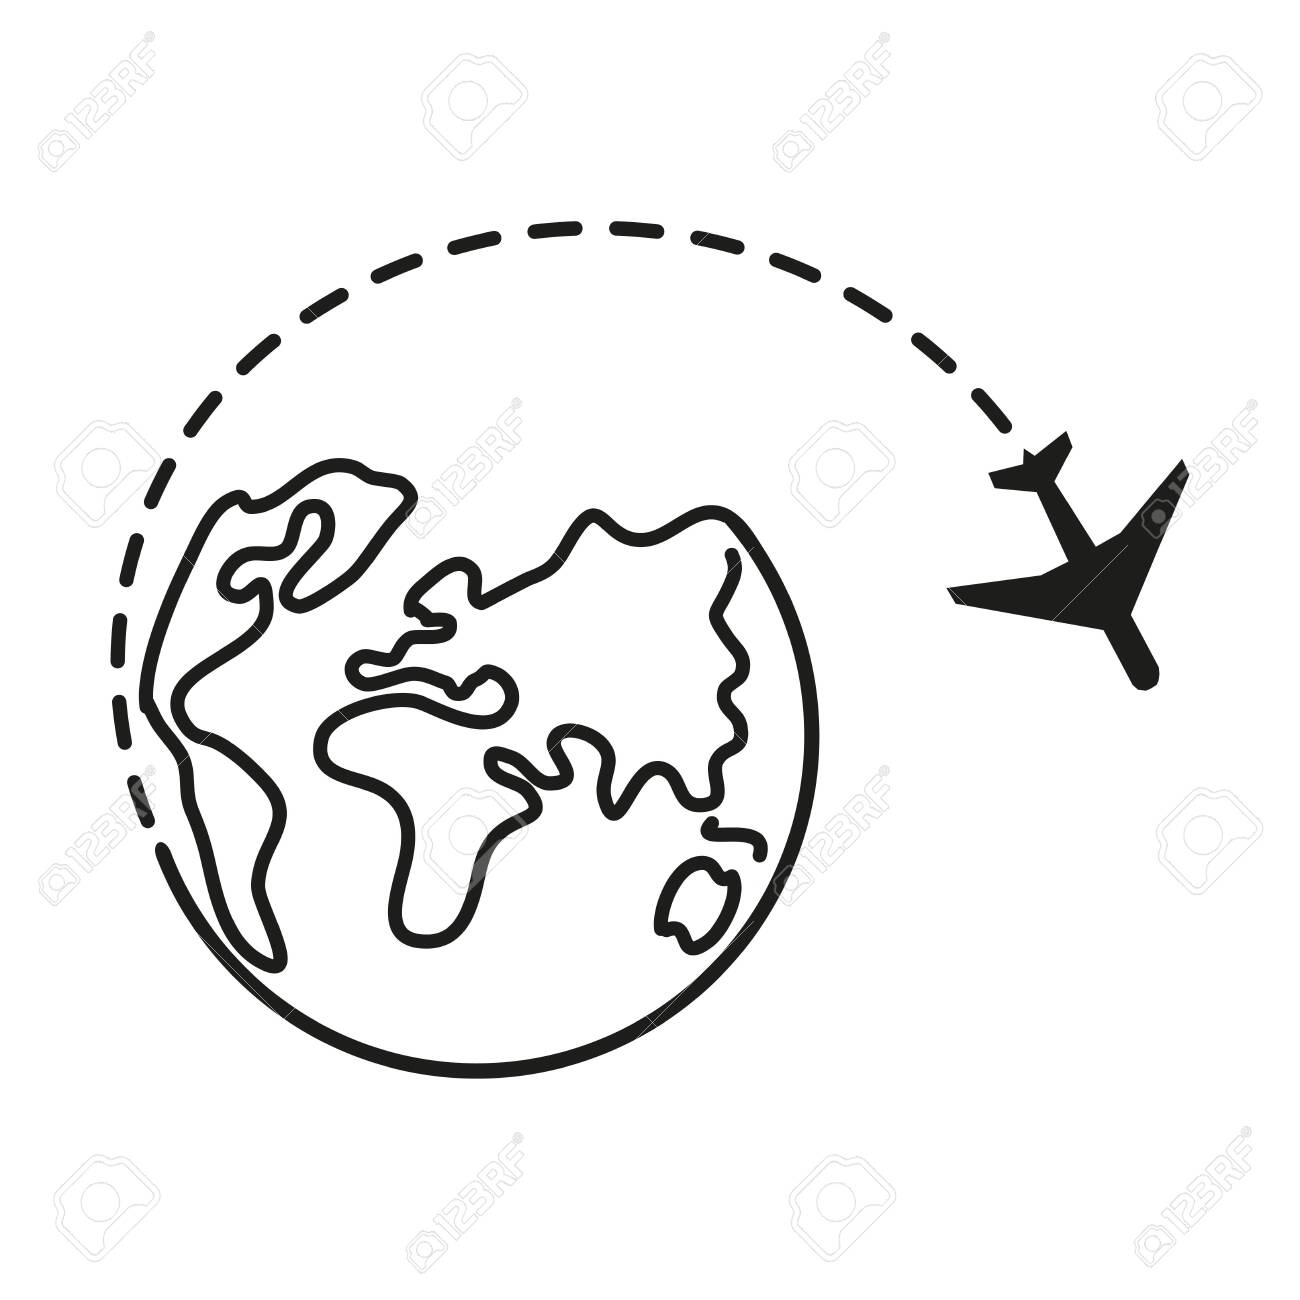 Global traveling travel around the World. Airplane fly around the planet Earth. Logo. Black line Globe with flying plane icon isolated on white background. Airplane fly around the planet earth. - 146364553